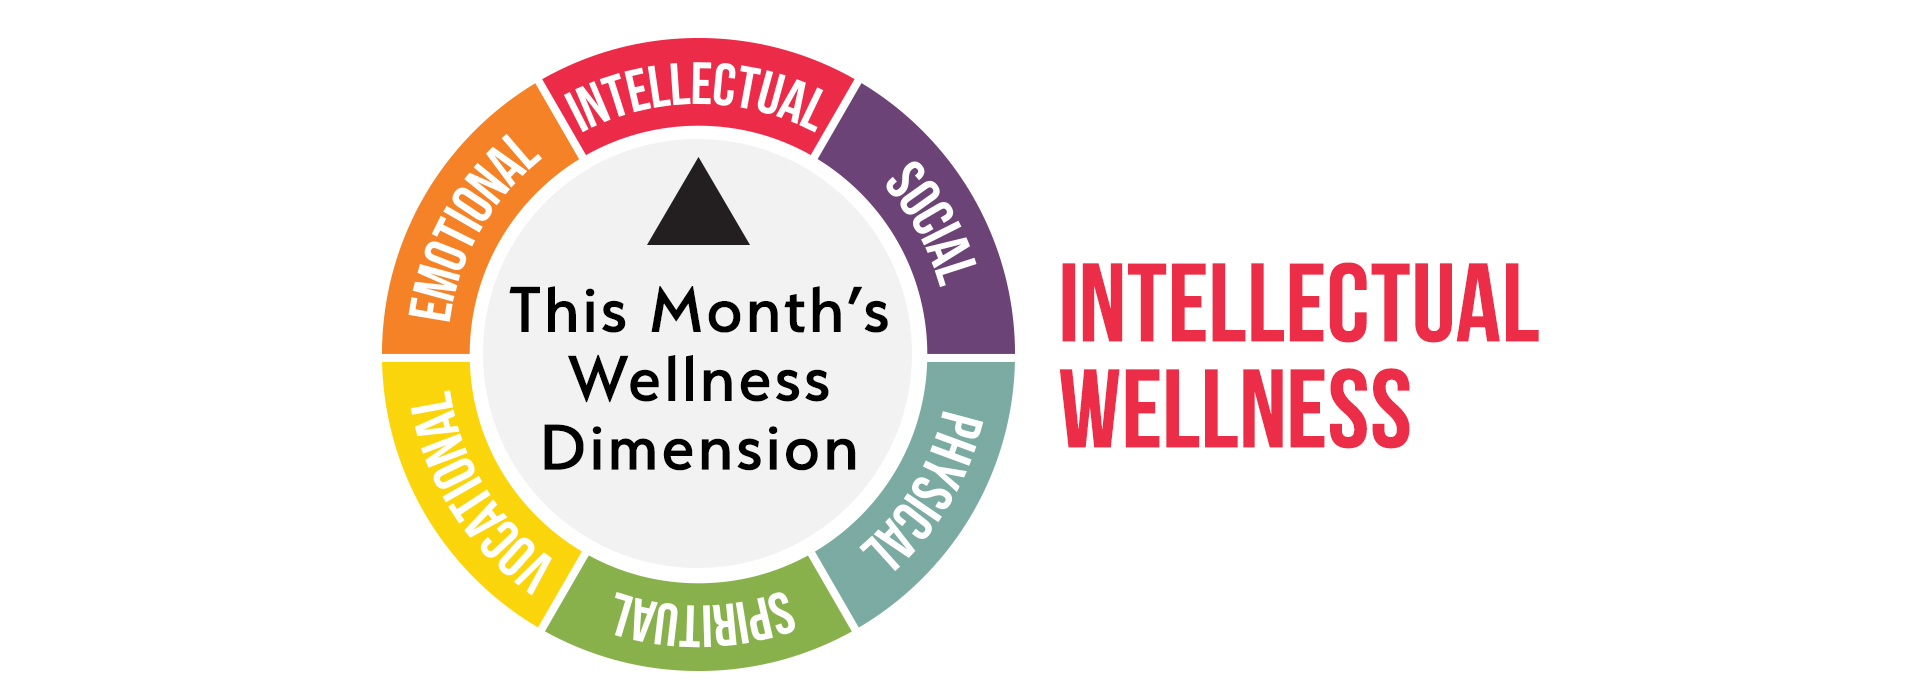 Keeping Up With The Wellness Dimensions: Intellectual Wellness